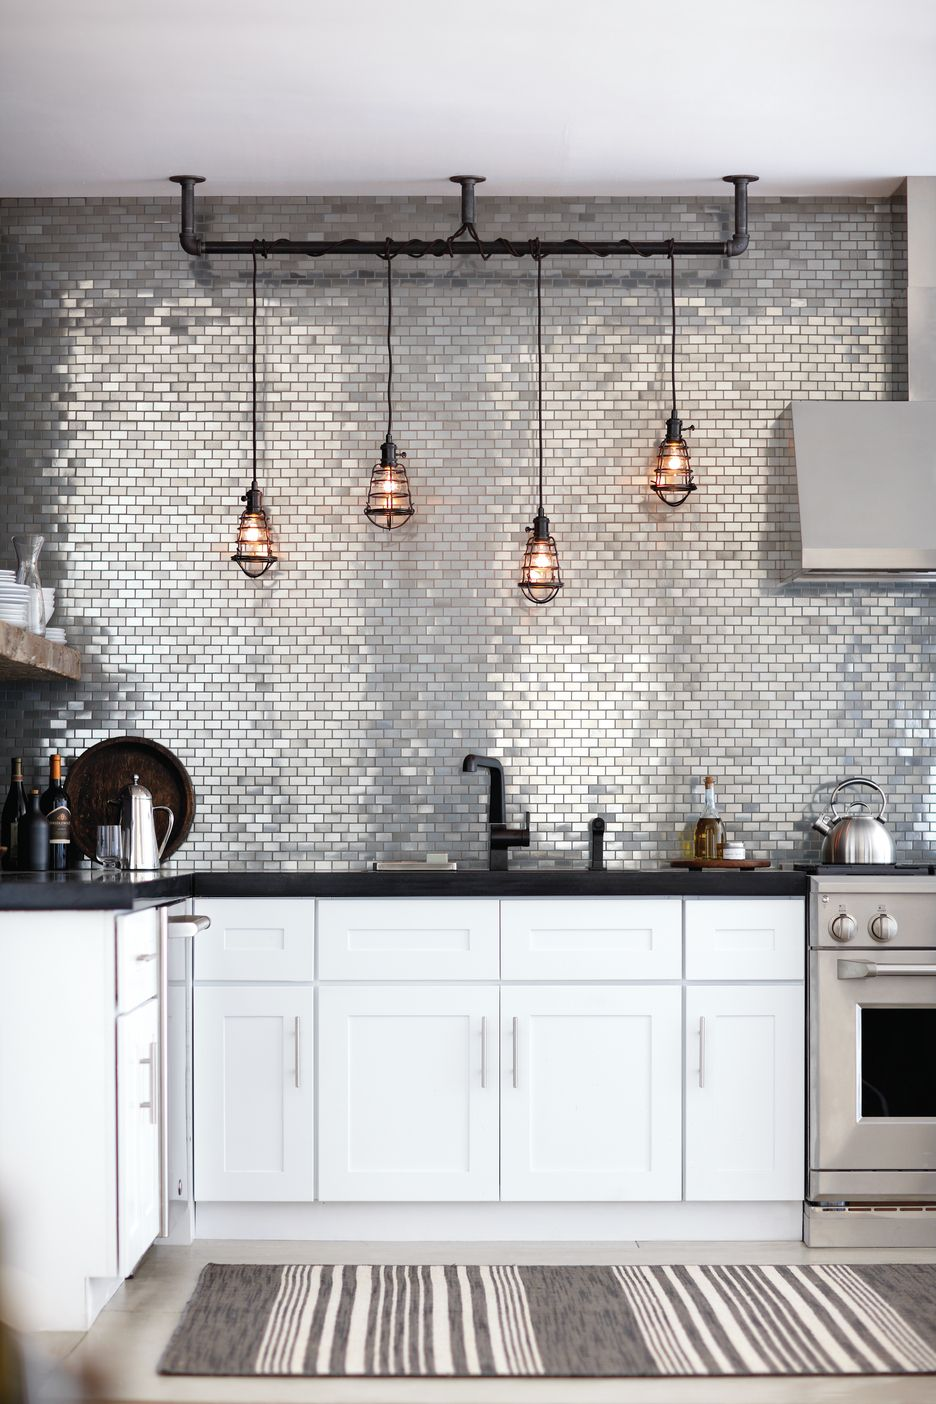 30 Simple Kitchen Backsplash Ideas Backsplash For White